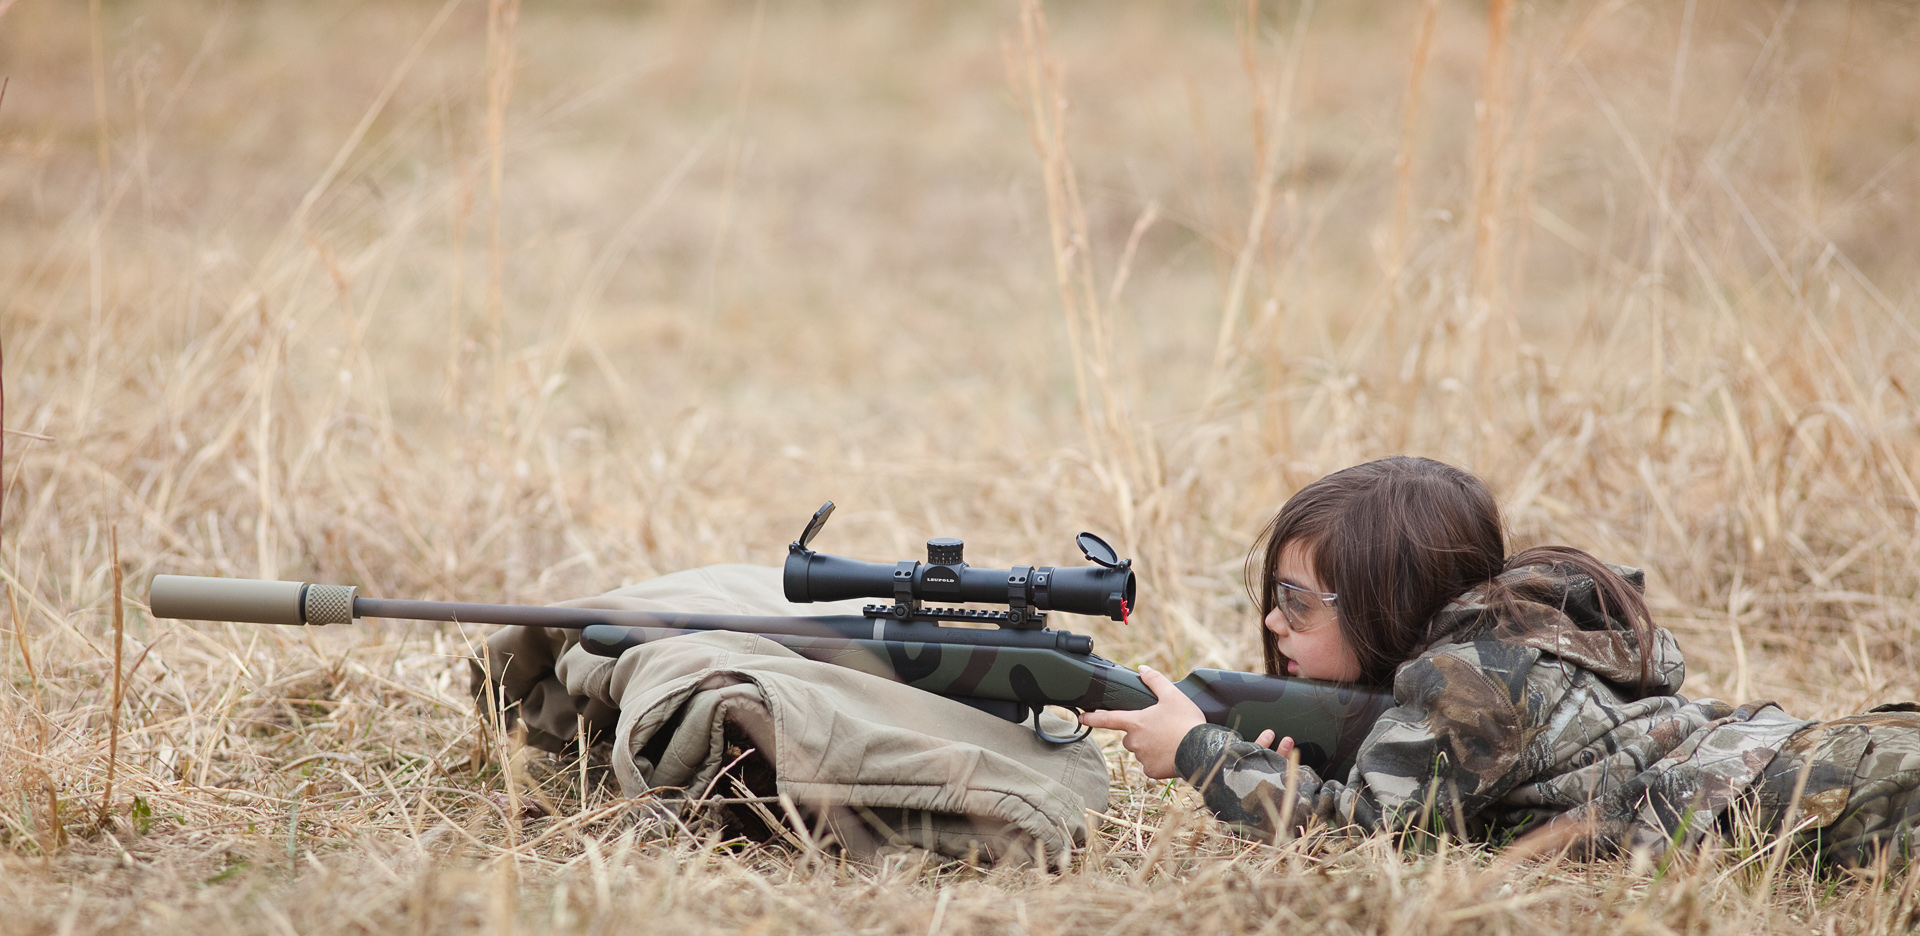 women army sniper wallpaper - photo #8